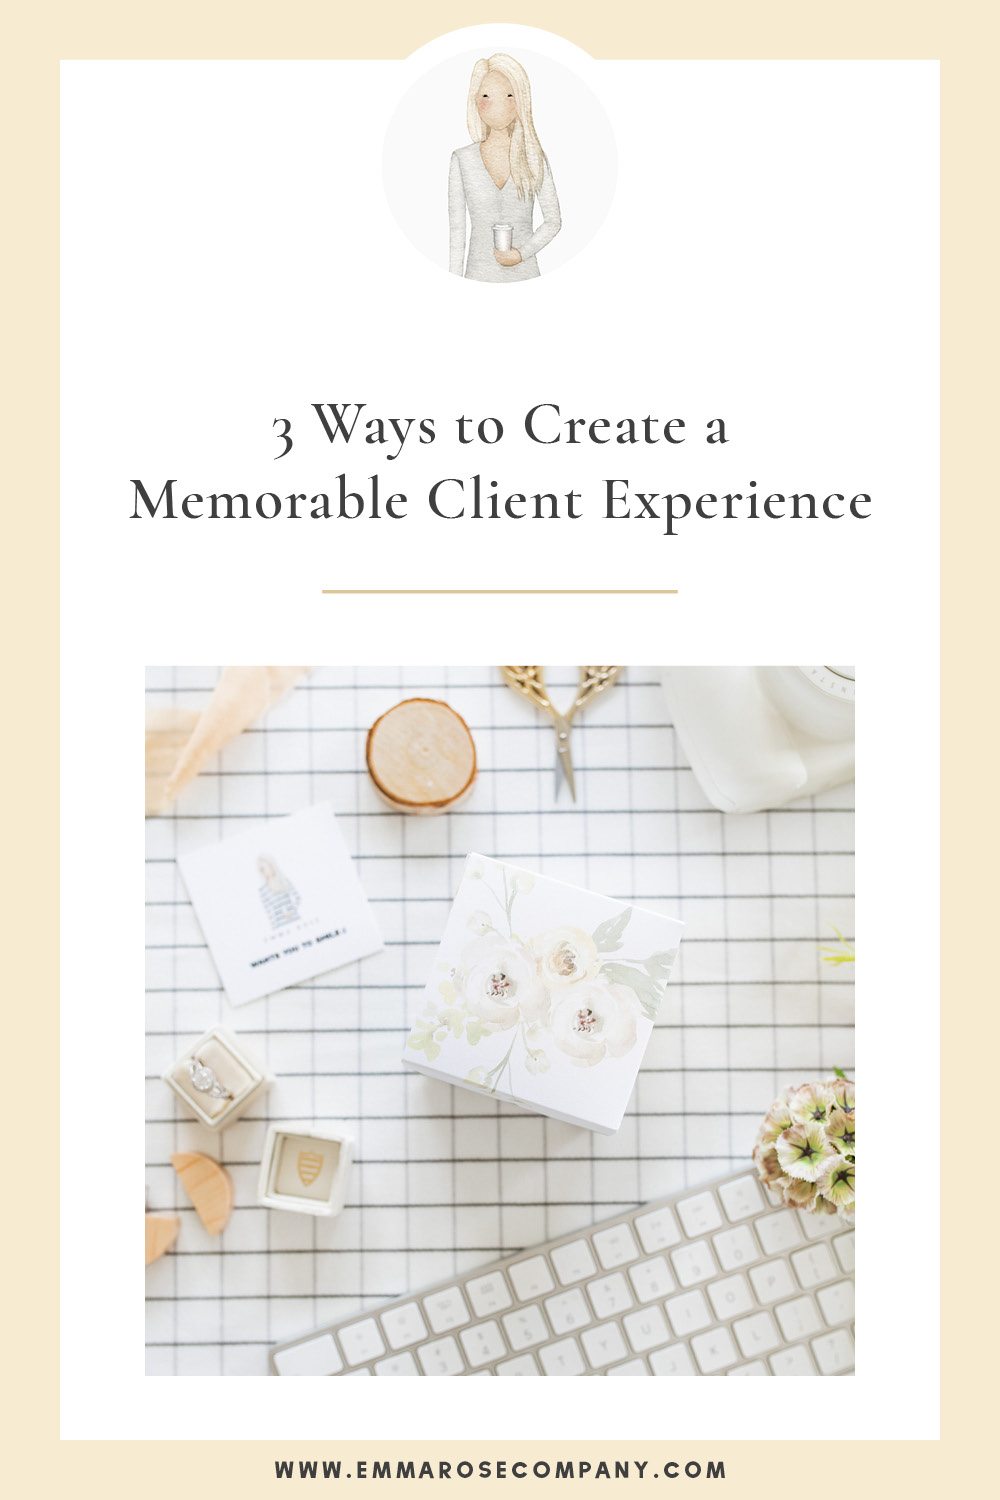 Today I want to dive into 3 things I feel are so important when it comes to creating a memorable and meaningful client experience.  You'll also want to read all the way through to snag a copy of my own workflow to stay on top of the client experience!  I personally use #Greetabl for all my client gifting and couldn't imagine anything better!  #emmarosecompany #clientgifts #gifting #businesstips